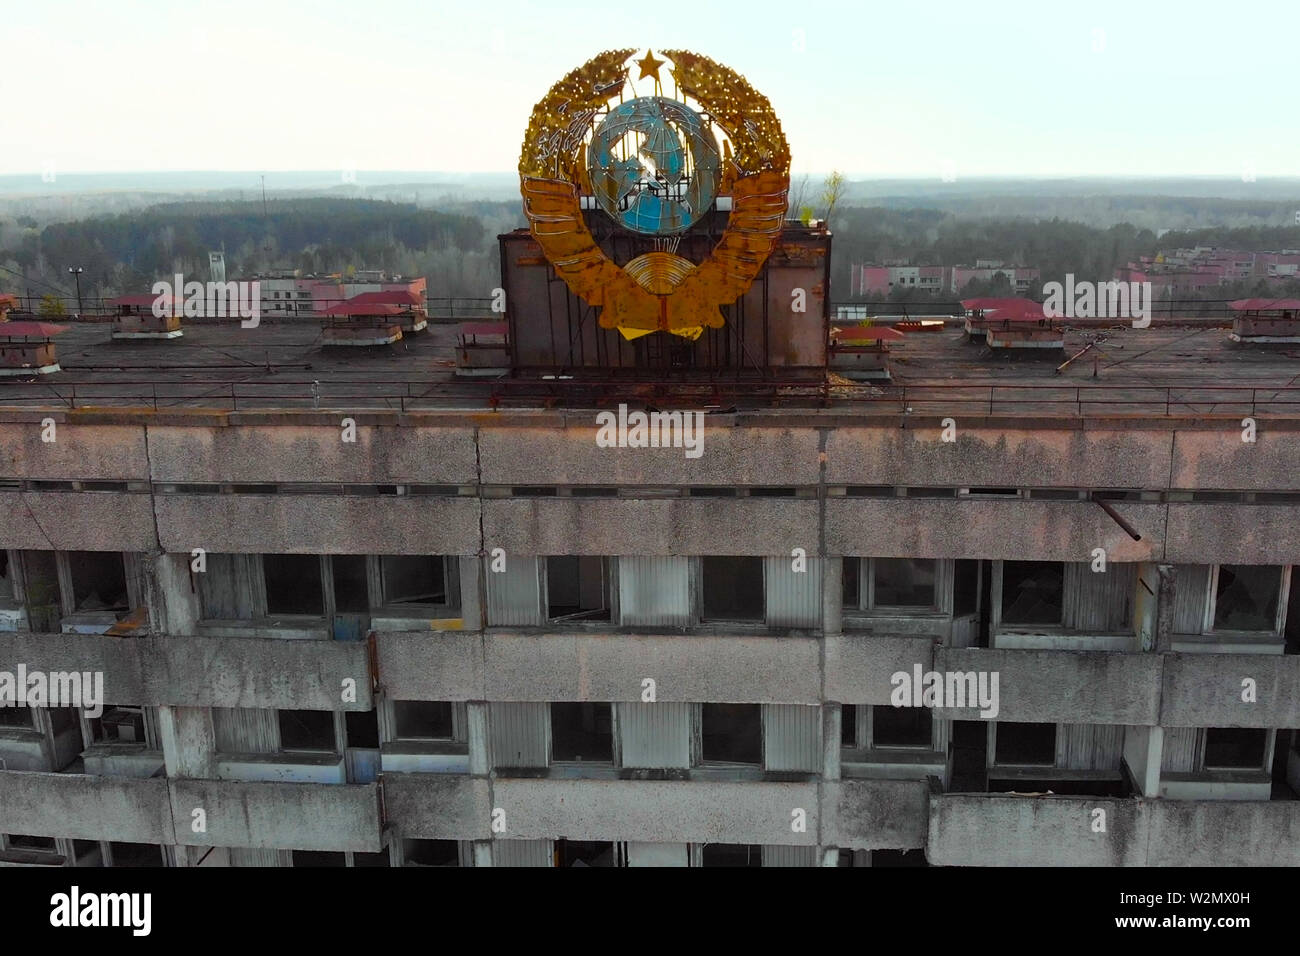 Soviet coat of arms on a building in Pripyat - Stock Image